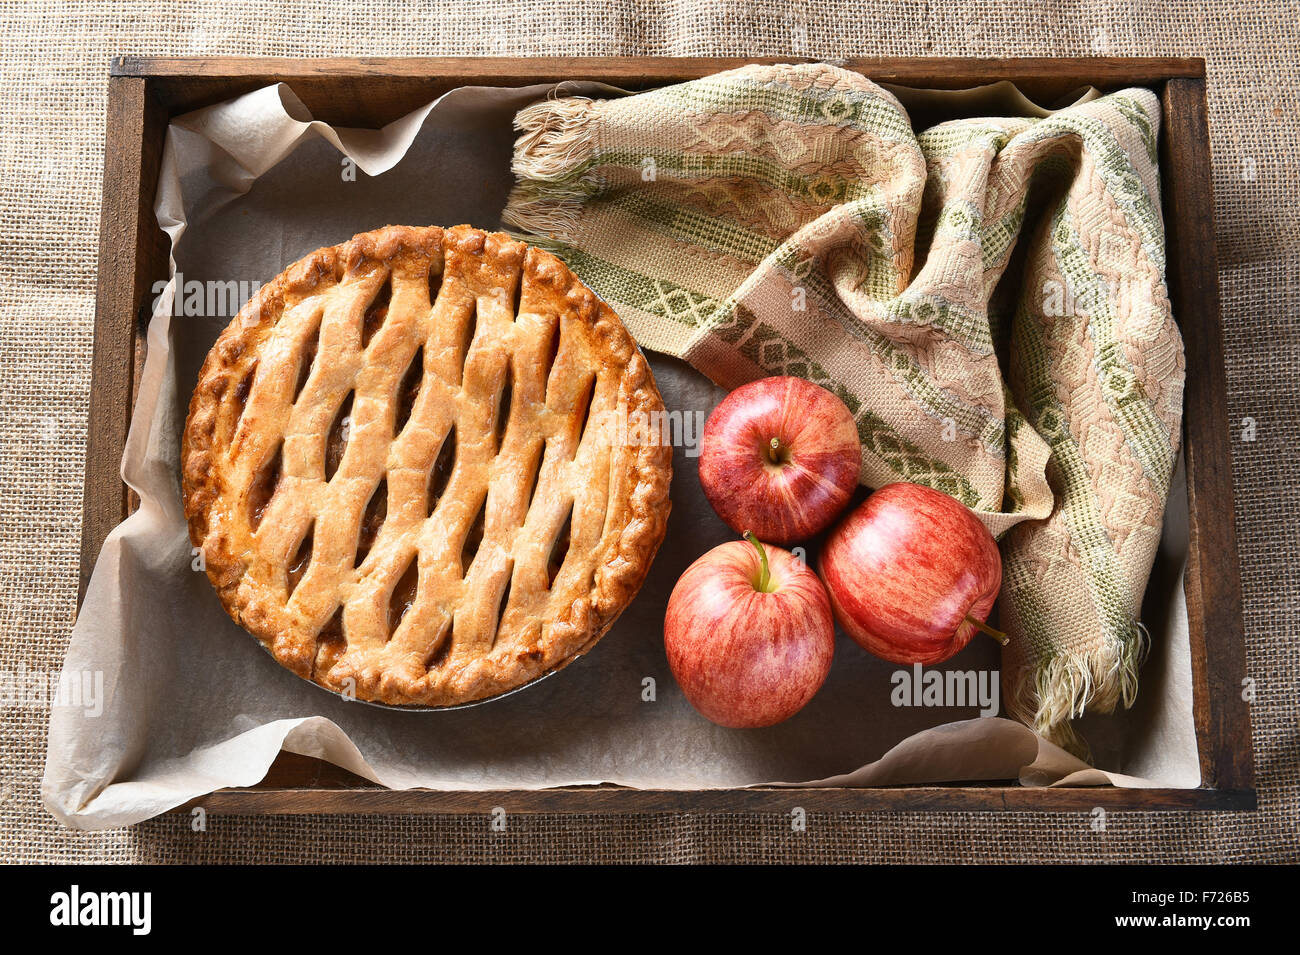 High angle view of a fresh baked apple pie and apples in a wood box on burlap surface. - Stock Image